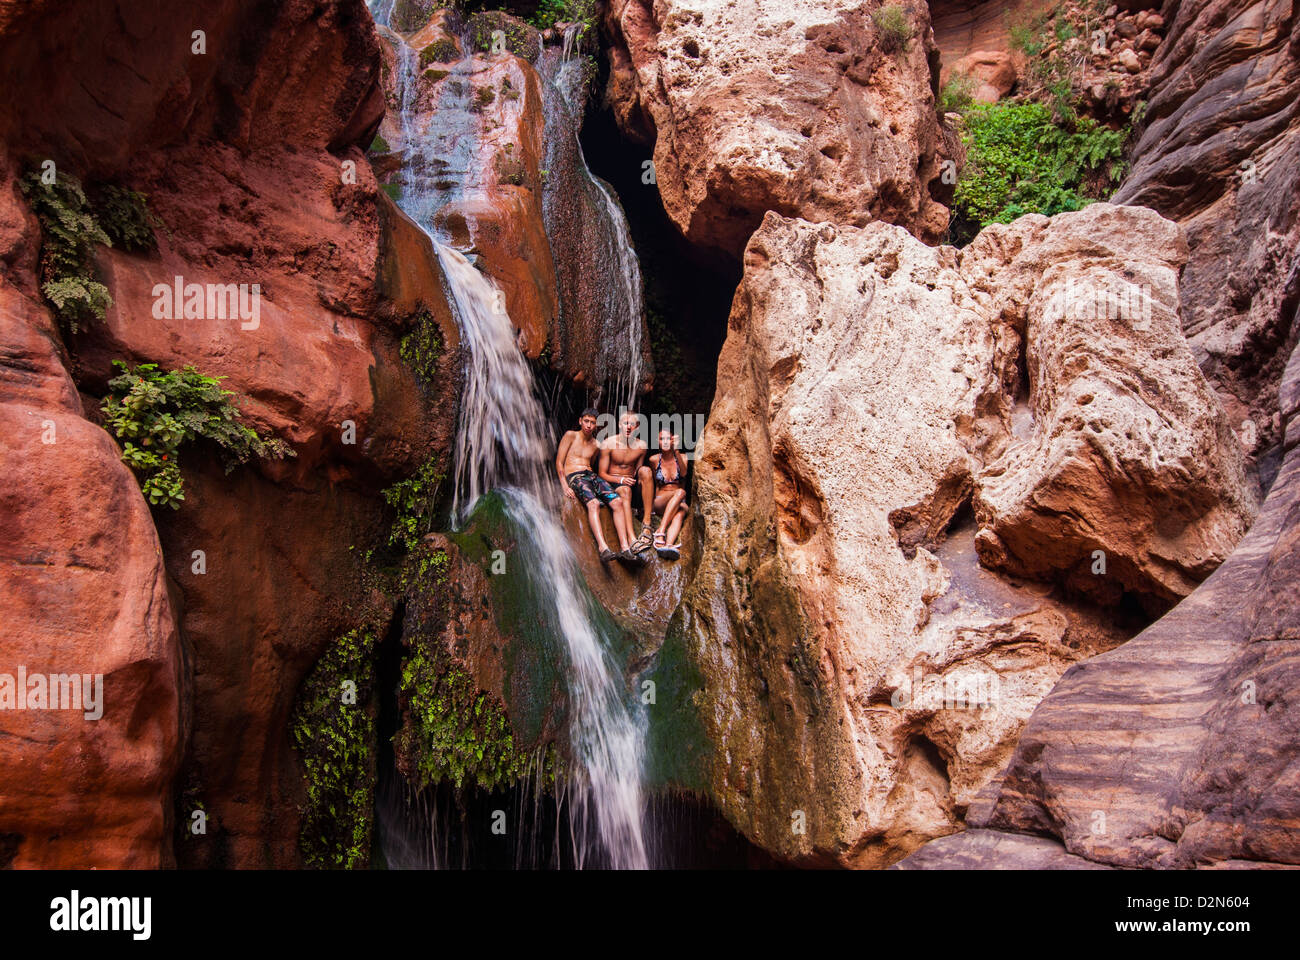 Tourists bathing in a waterfall, seen while rafting down the Colorado River, Grand Canyon, Arizona, USA - Stock Image